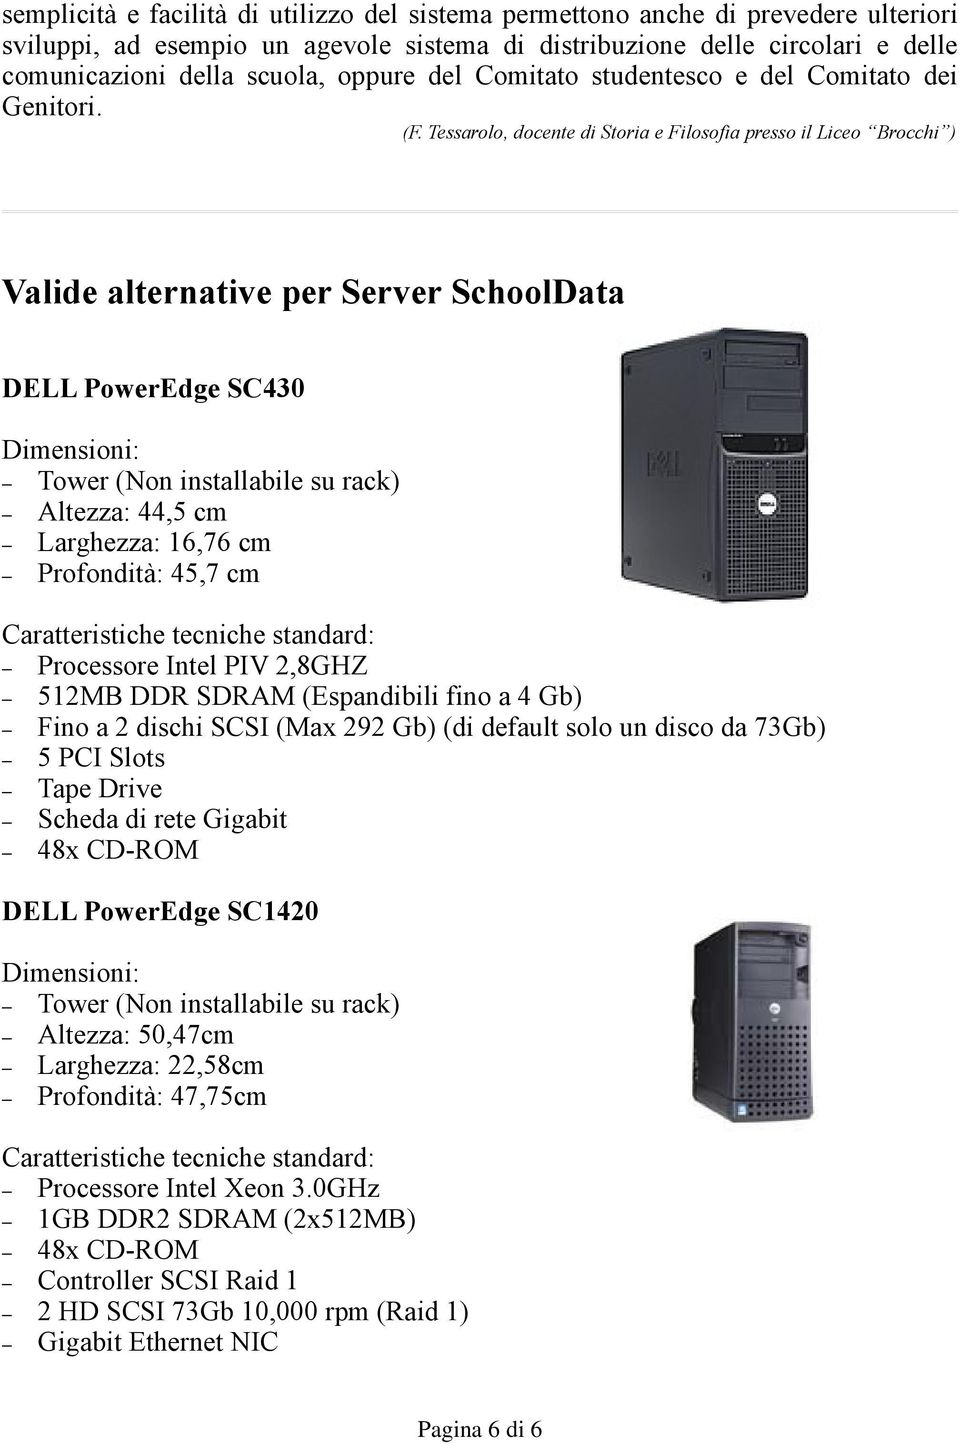 Tessarolo, docente di Storia e Filosofia presso il Liceo Brocchi ) Valide alternative per Server SchoolData DELL PowerEdge SC430 Dimensioni: Tower (Non installabile su rack) Altezza: 44,5 cm